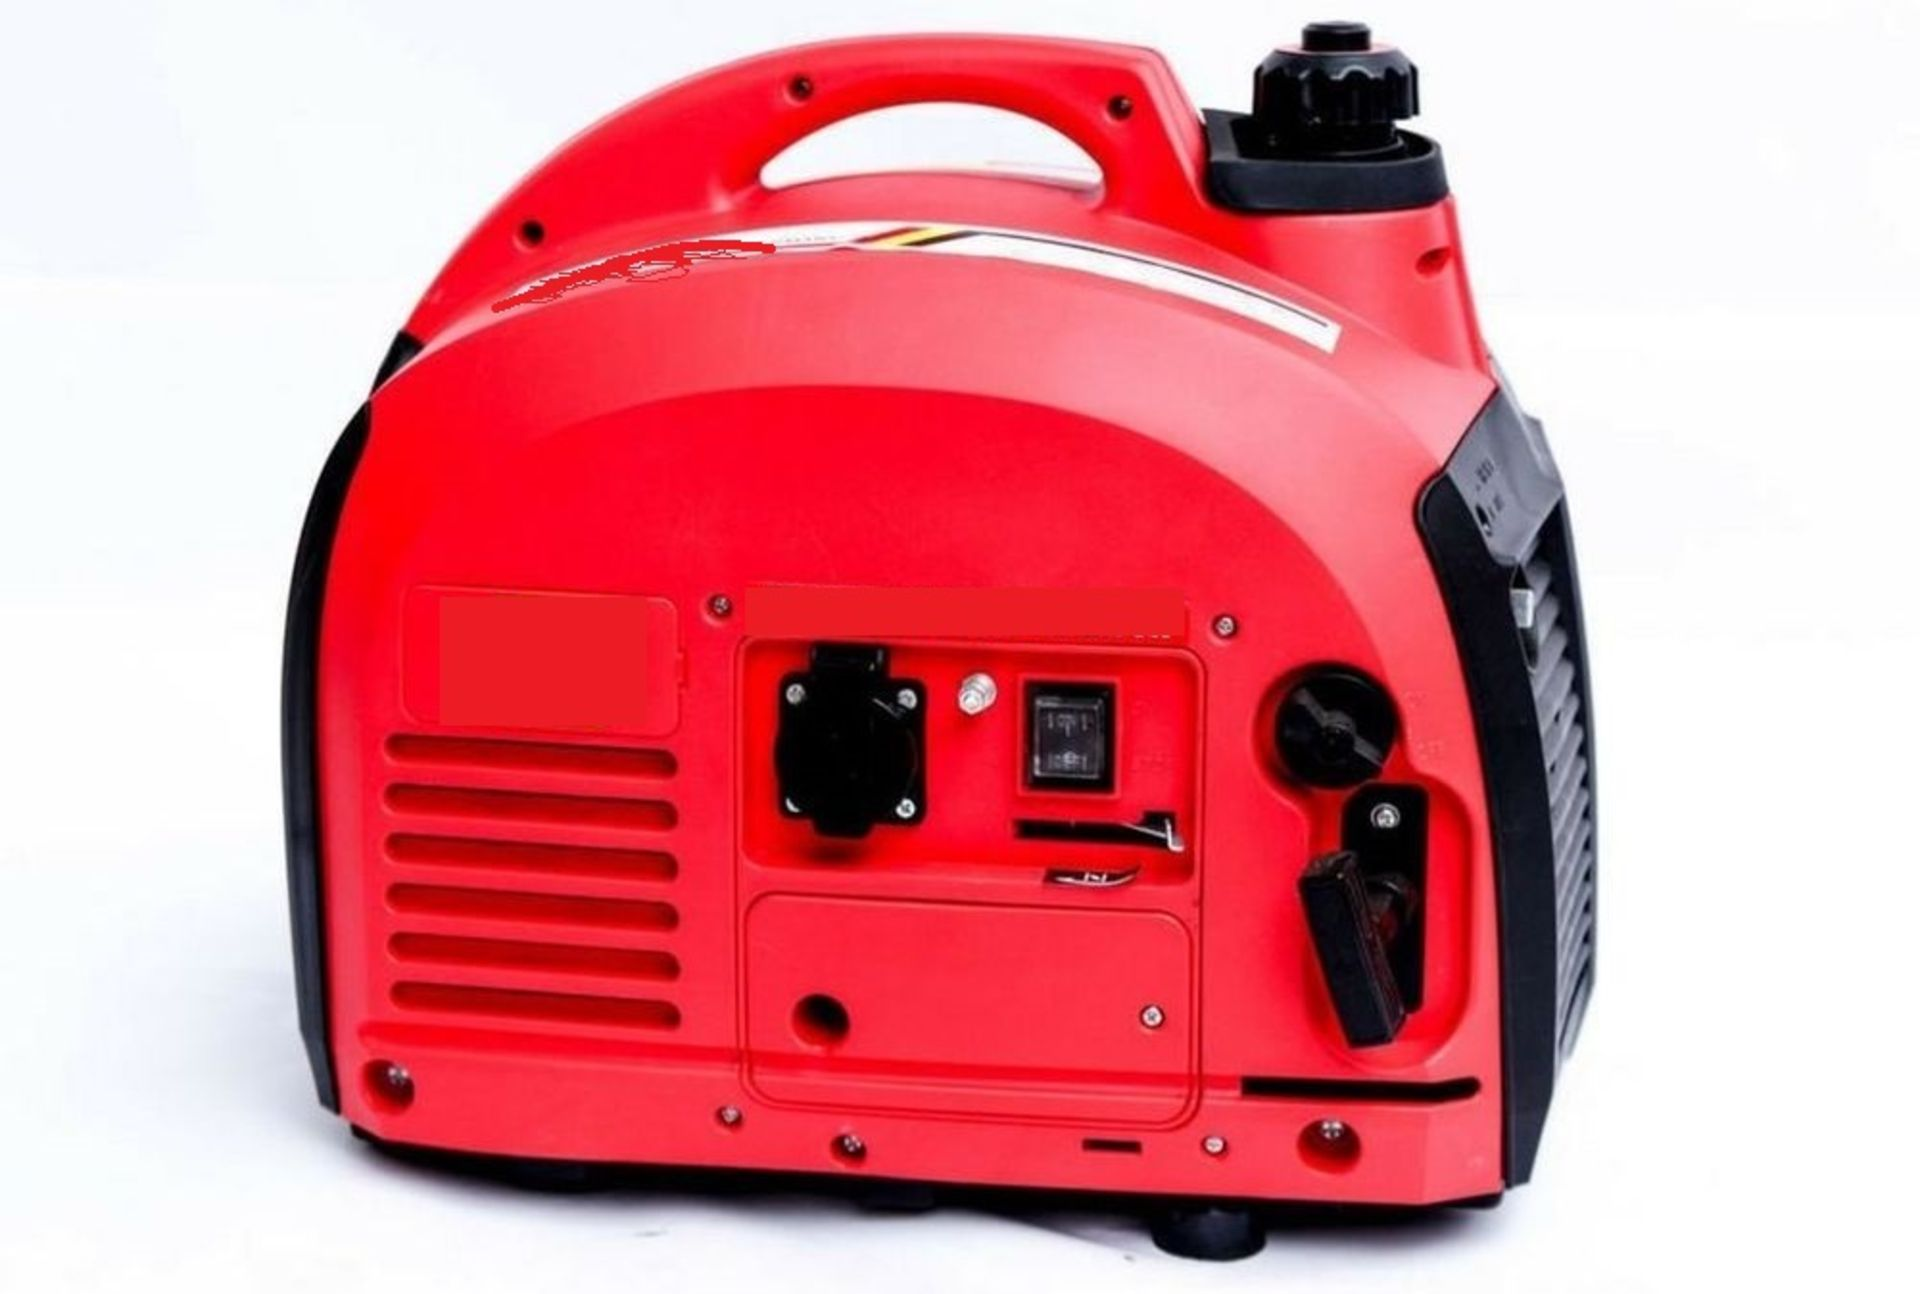 Lot 59032 - V Brand New Generator (Camping/Event Style) With Carry Handle 2000W Max Output 18KG £229.77 eBay